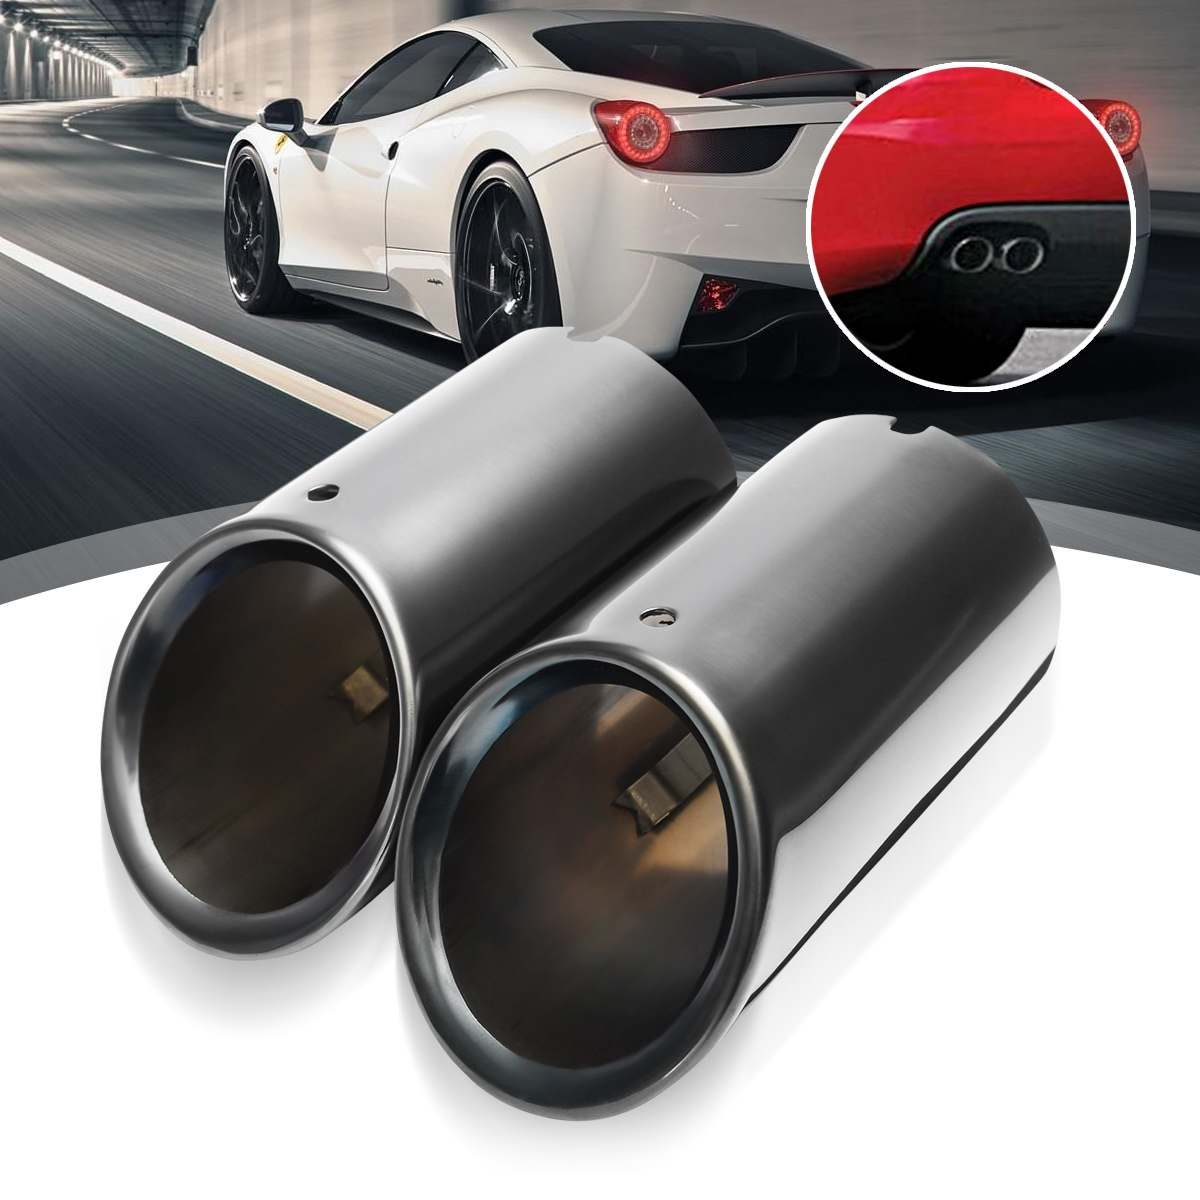 Pair Car Rear Exhaust Muffler Tail Pipe Tip 7.6 cm Diameter Stainless Steel For Audi Q5 A1 A3 A5 A4 B8